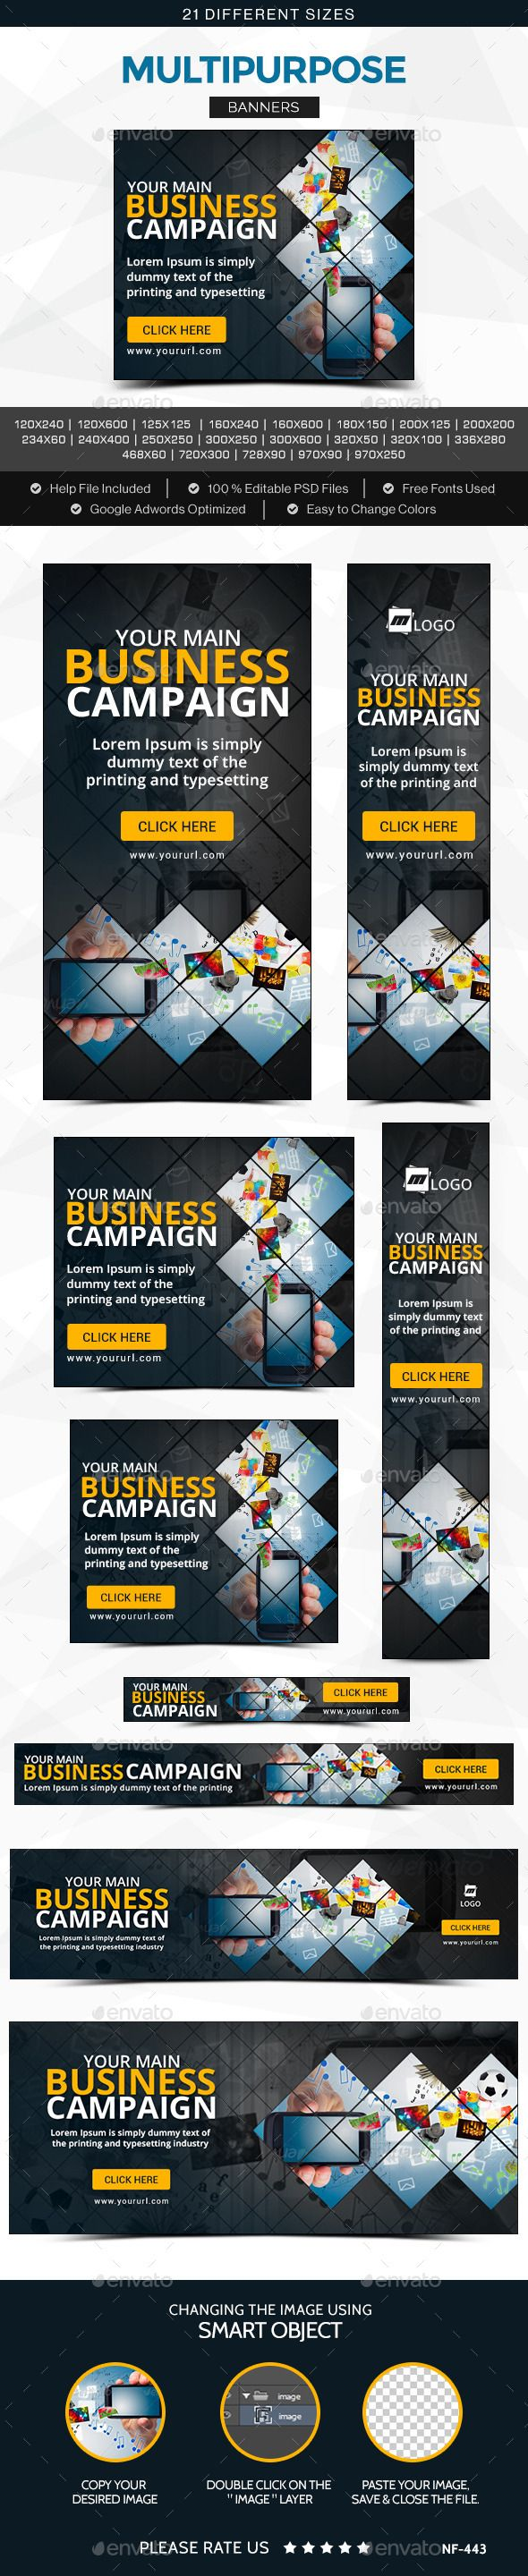 Multipurpose Banners Template #design #banners #web Download: http://graphicriver.net/item/multipurpose-banners/11834086?ref=ksioks